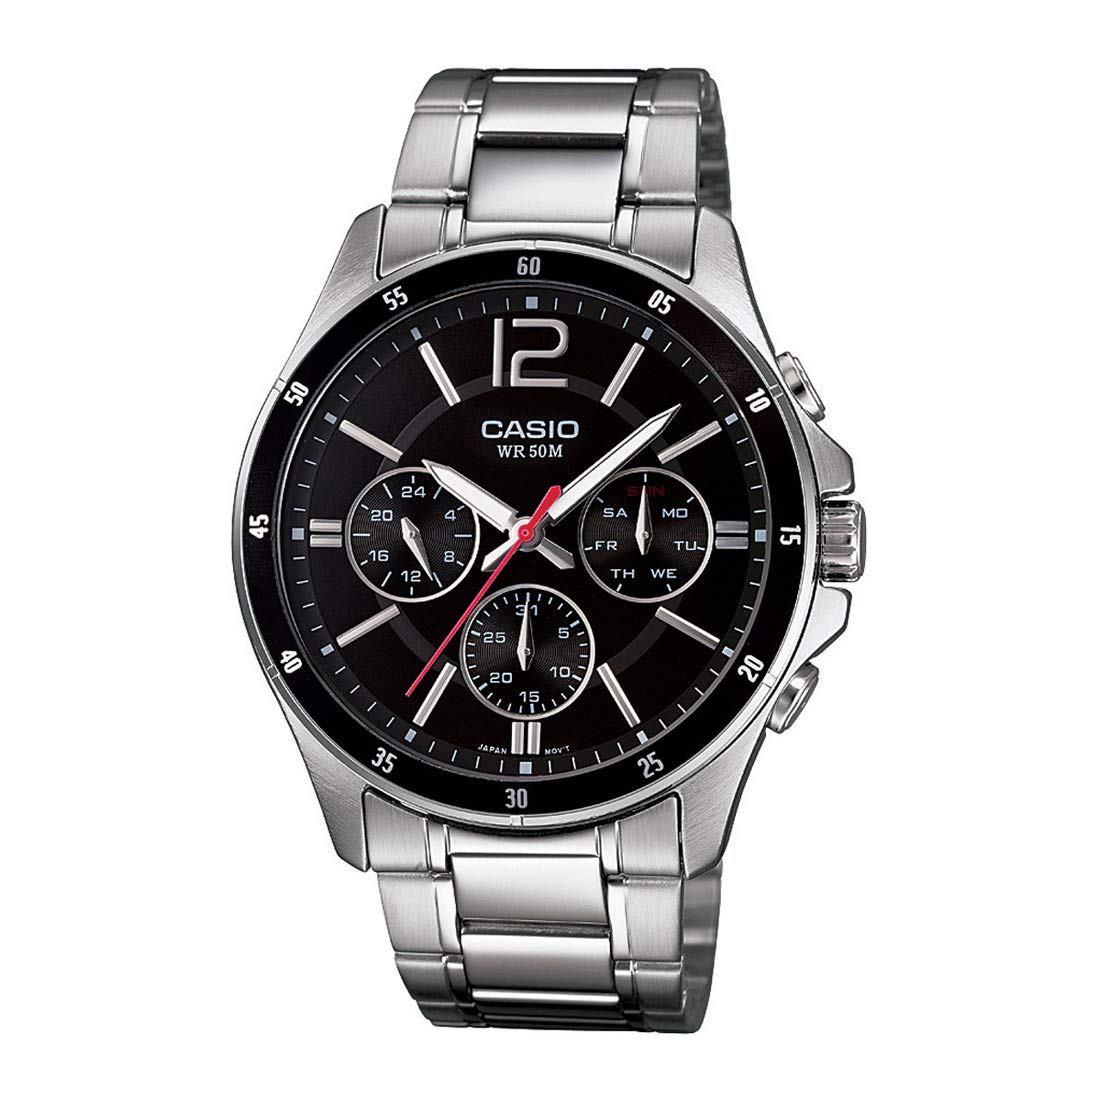 Casio Enticer Black Dial Best Mens Watches Under 5000 in India to buy in 2019 - Reviews & Buyers Guide